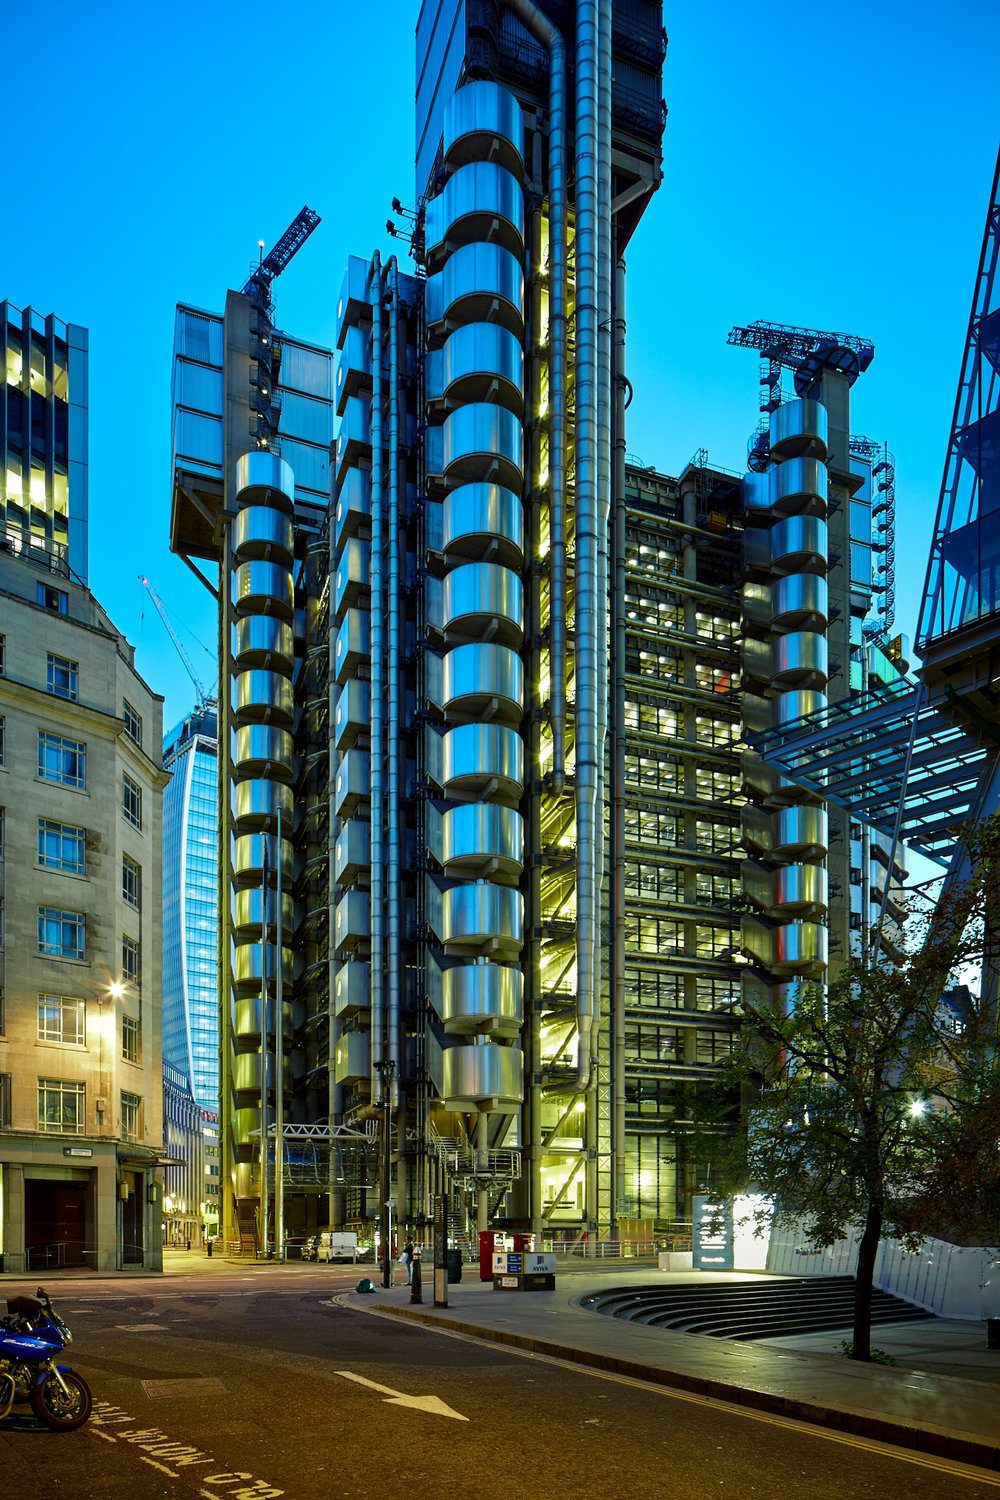 Lloyds building, London